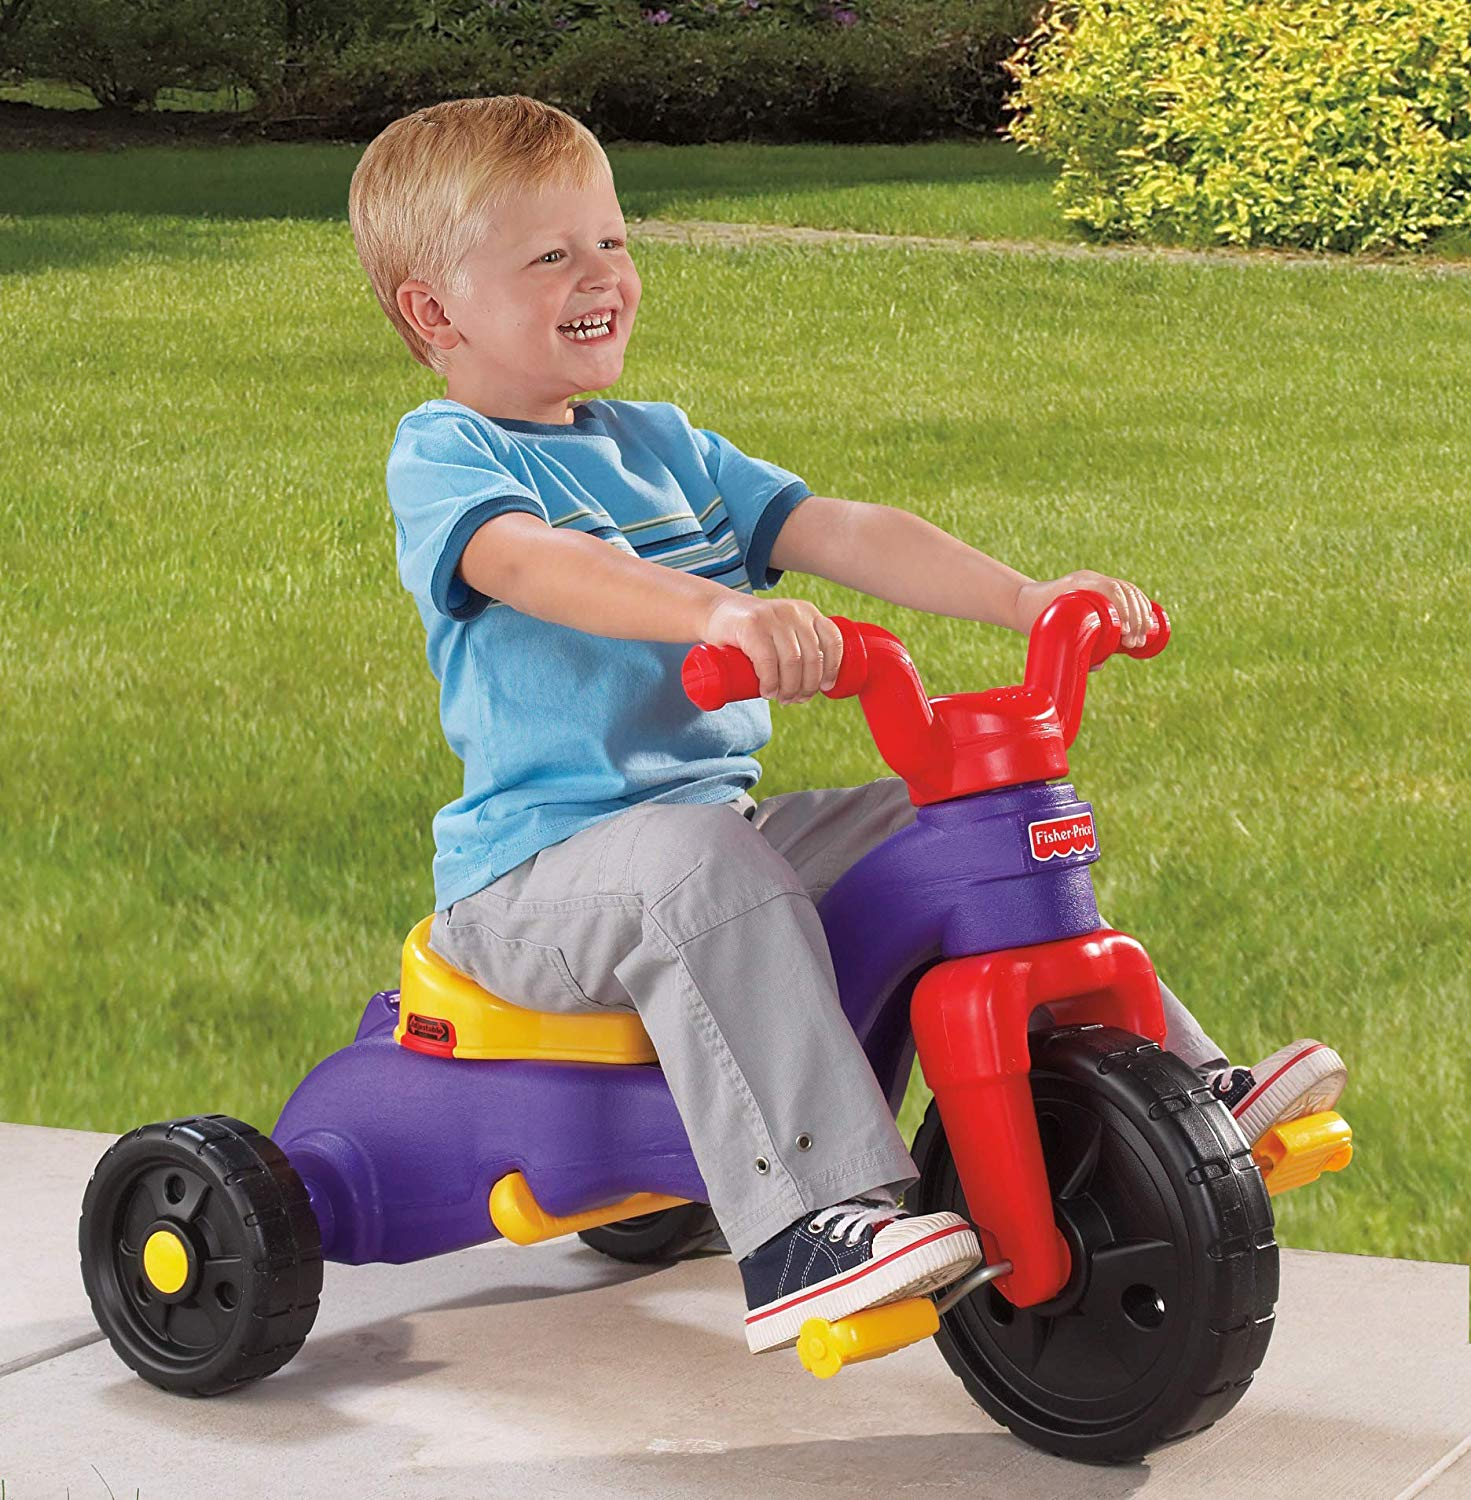 99678f59433 Best Toddler Tricycles for 2 and 3 Years Old 2019 - Kids Ride Wild